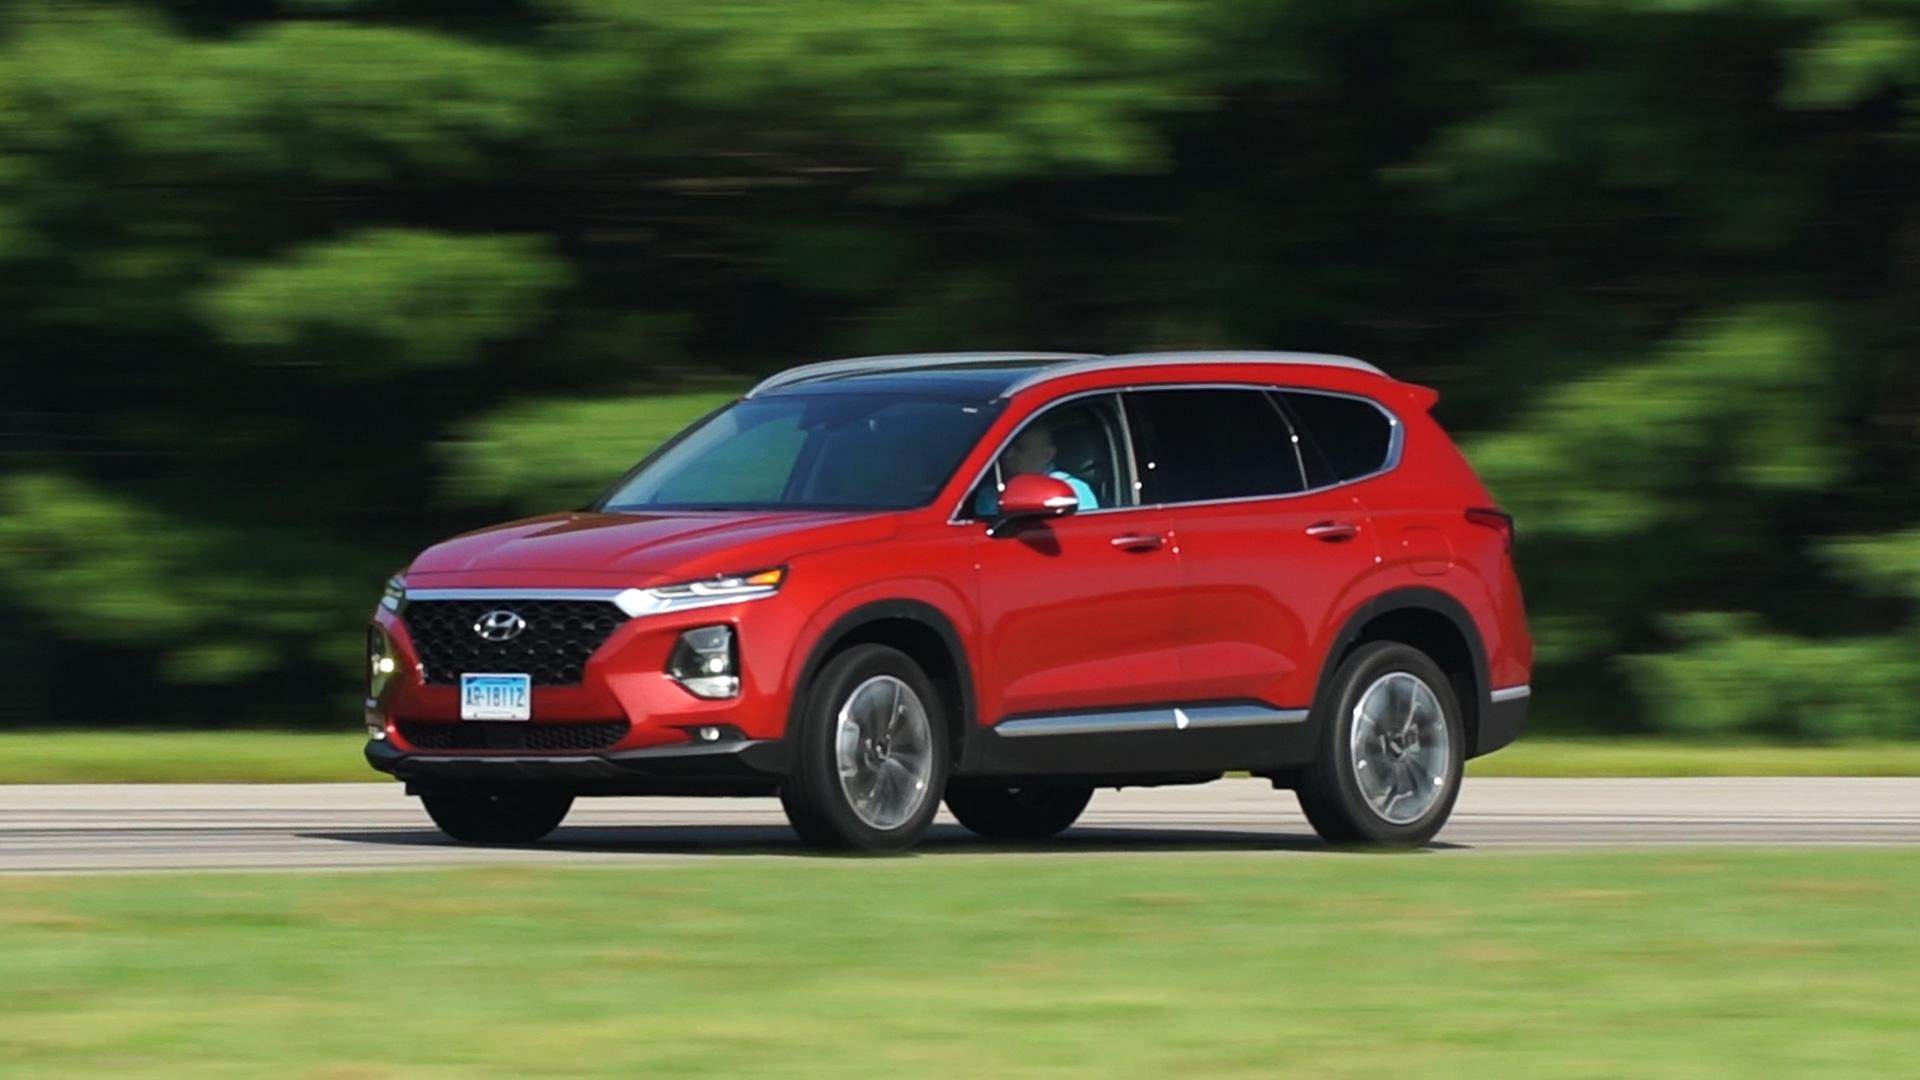 hight resolution of 2019 hyundai santa fe is a well rounded impressive suv